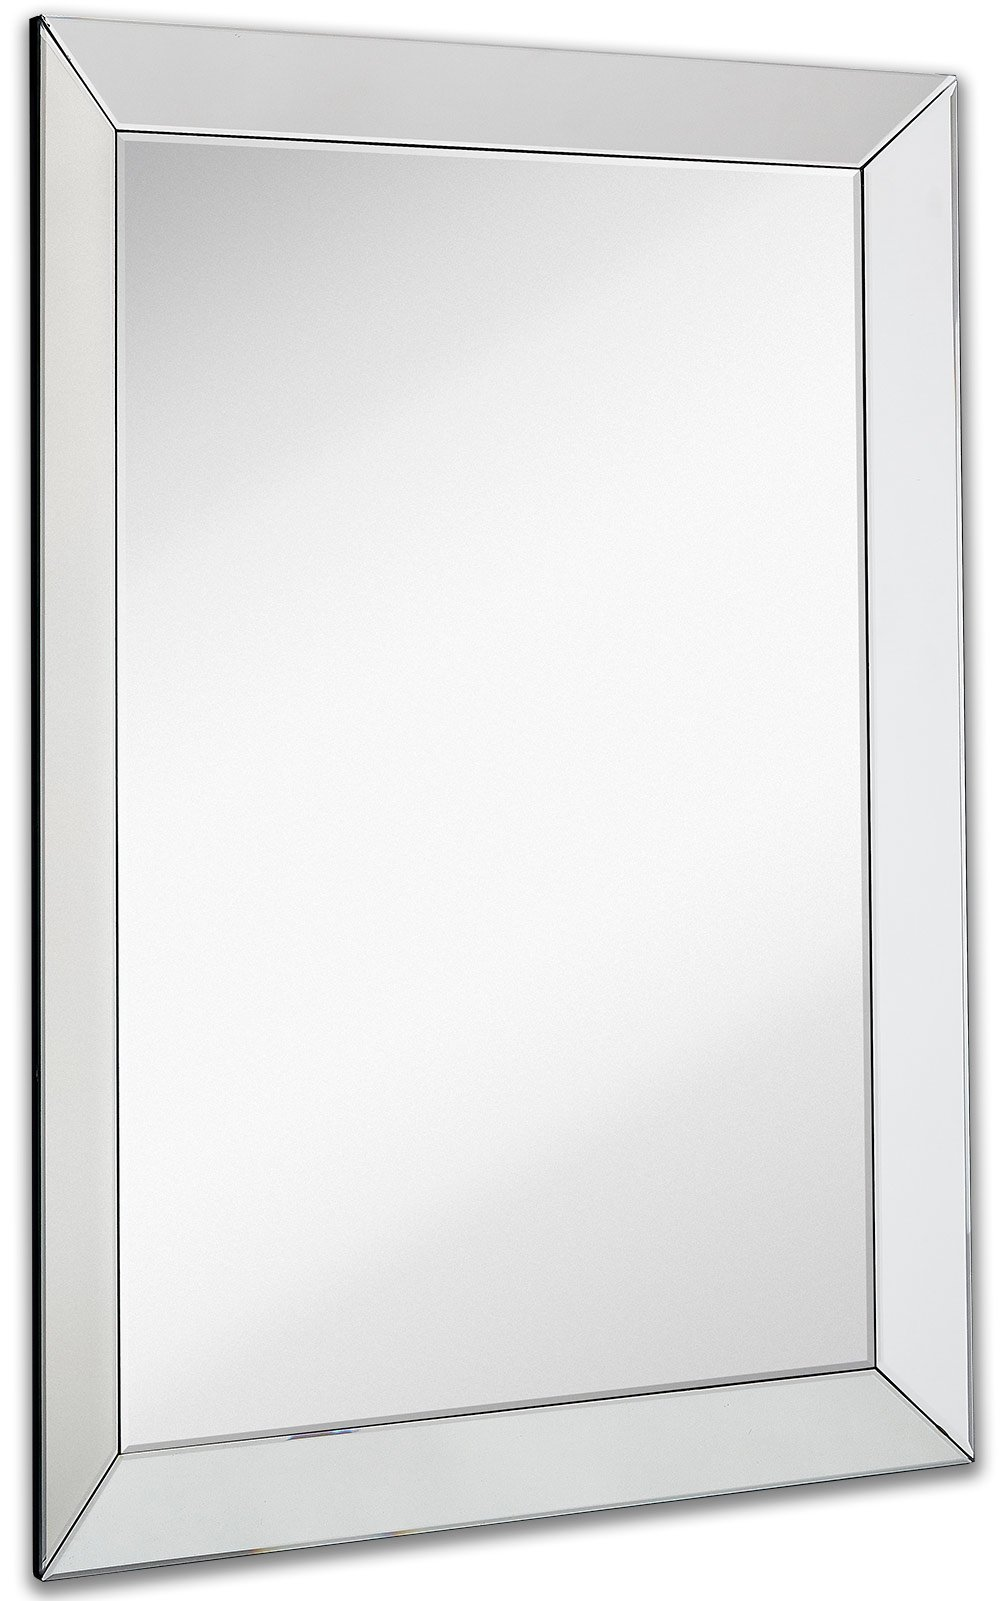 Large Framed Wall Mirror with 3 Inch Angled Beveled Mirror Frame | Premium Silver Backed Glass Panel Vanity, Bedroom, or Bathroom | Mirrored Rectangle Hangs Horizontal or Vertical (30'' x 40'')